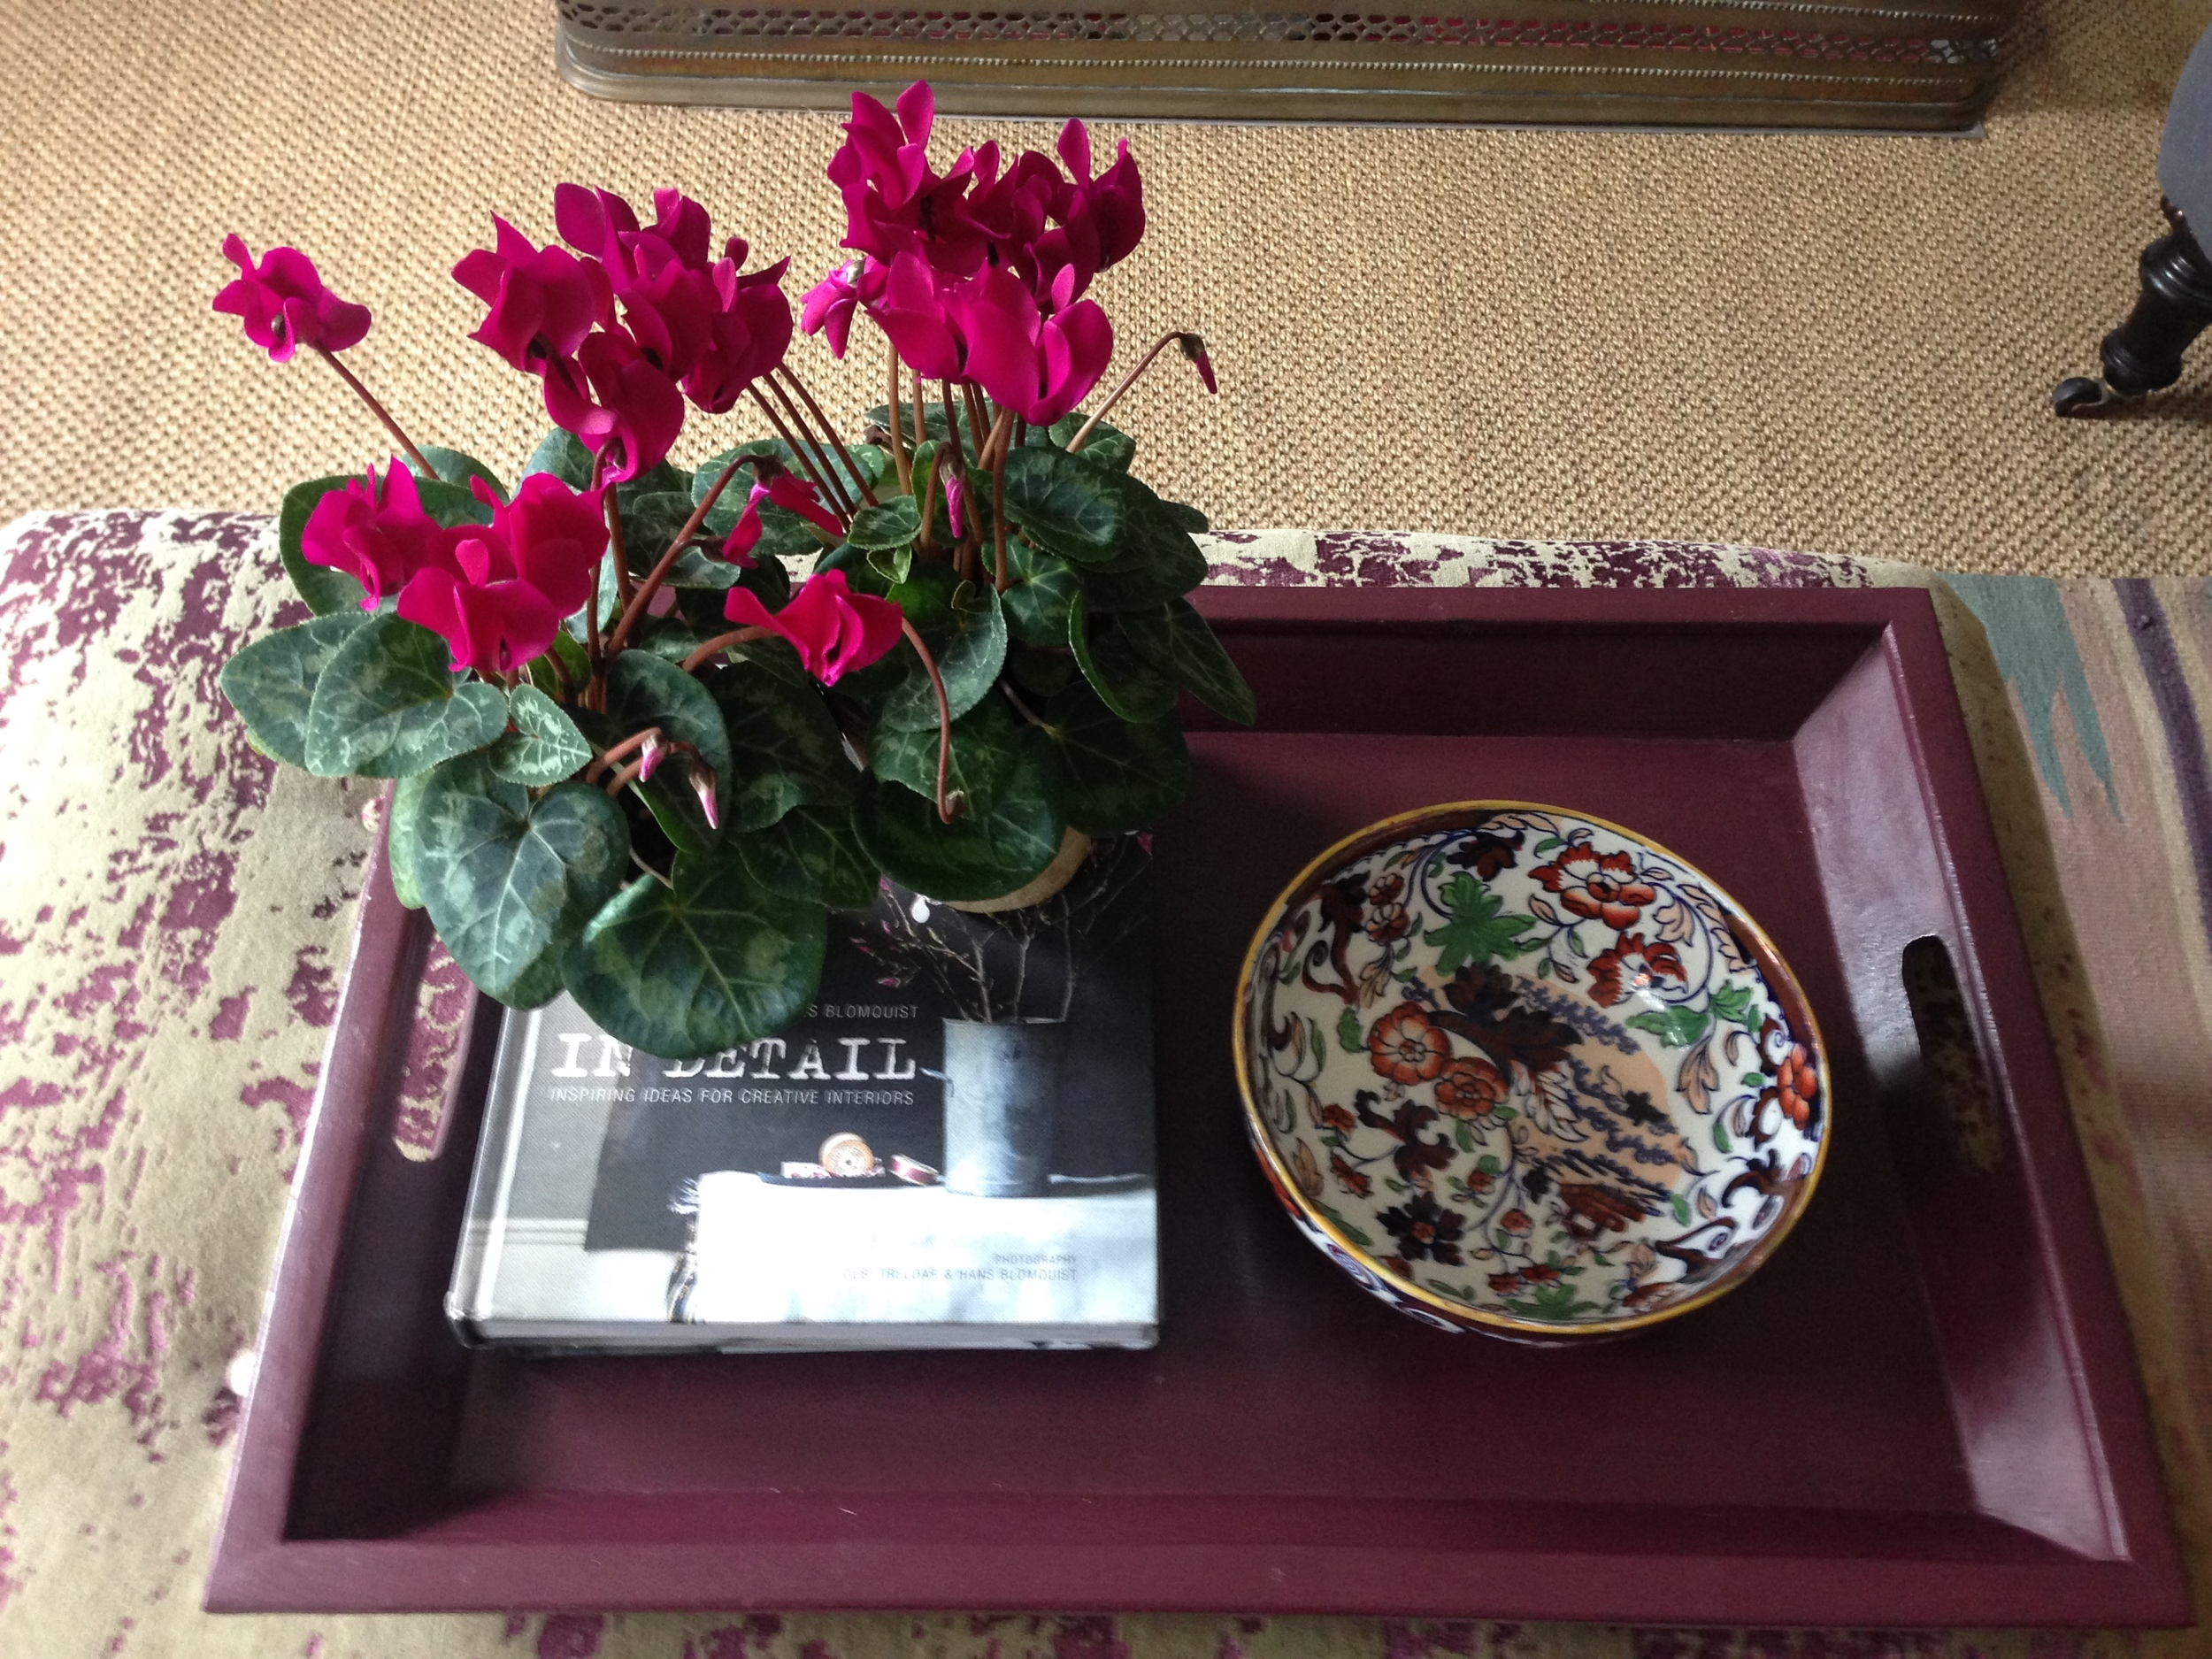 The little vintage bowl I purchased has found its place on a tray I recently painted in Farrow & Ball 'Brinjal'